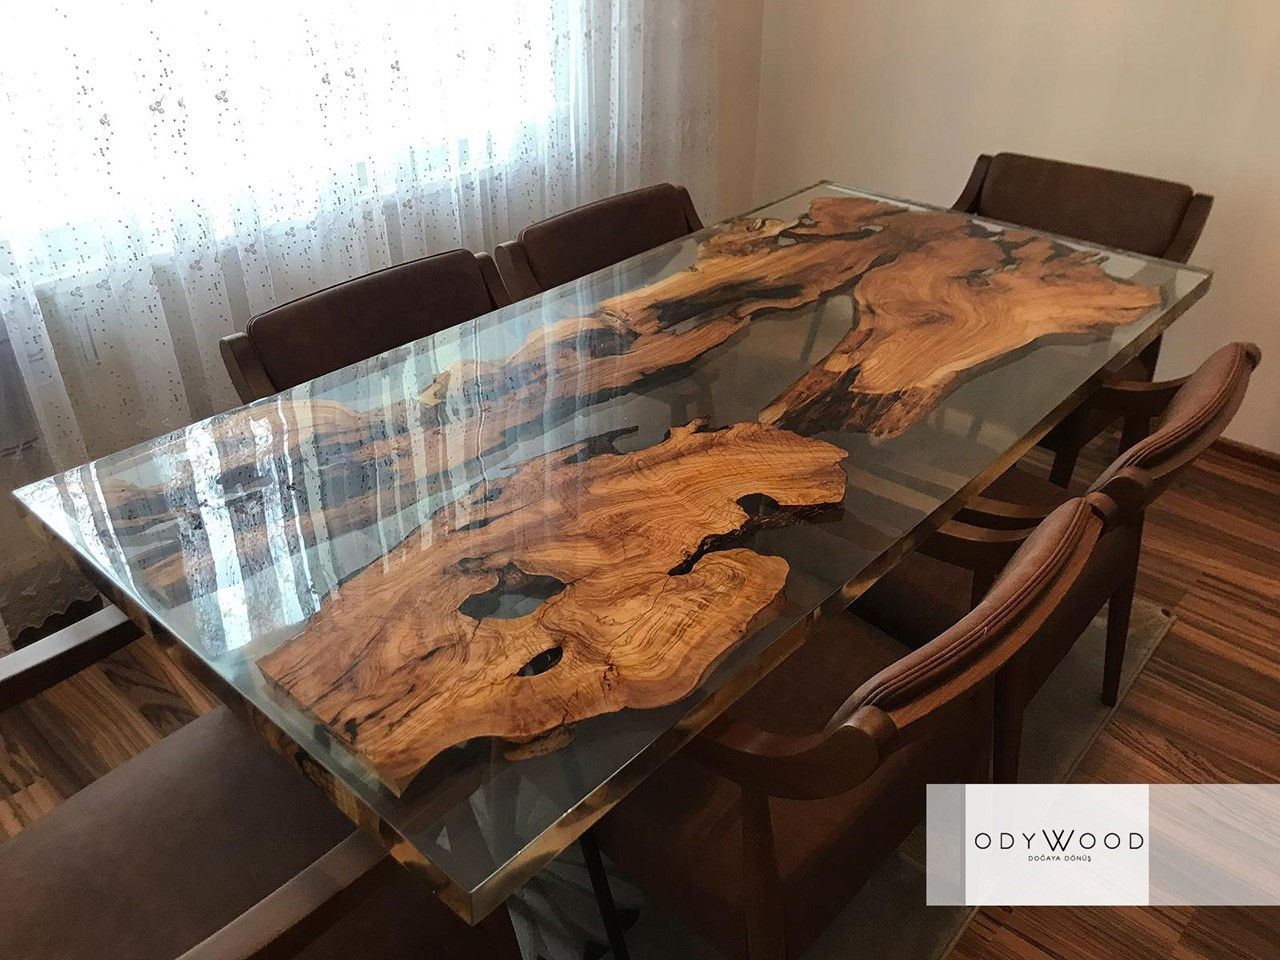 Epoxy Resin Olive Wood Dining Table'in resmi